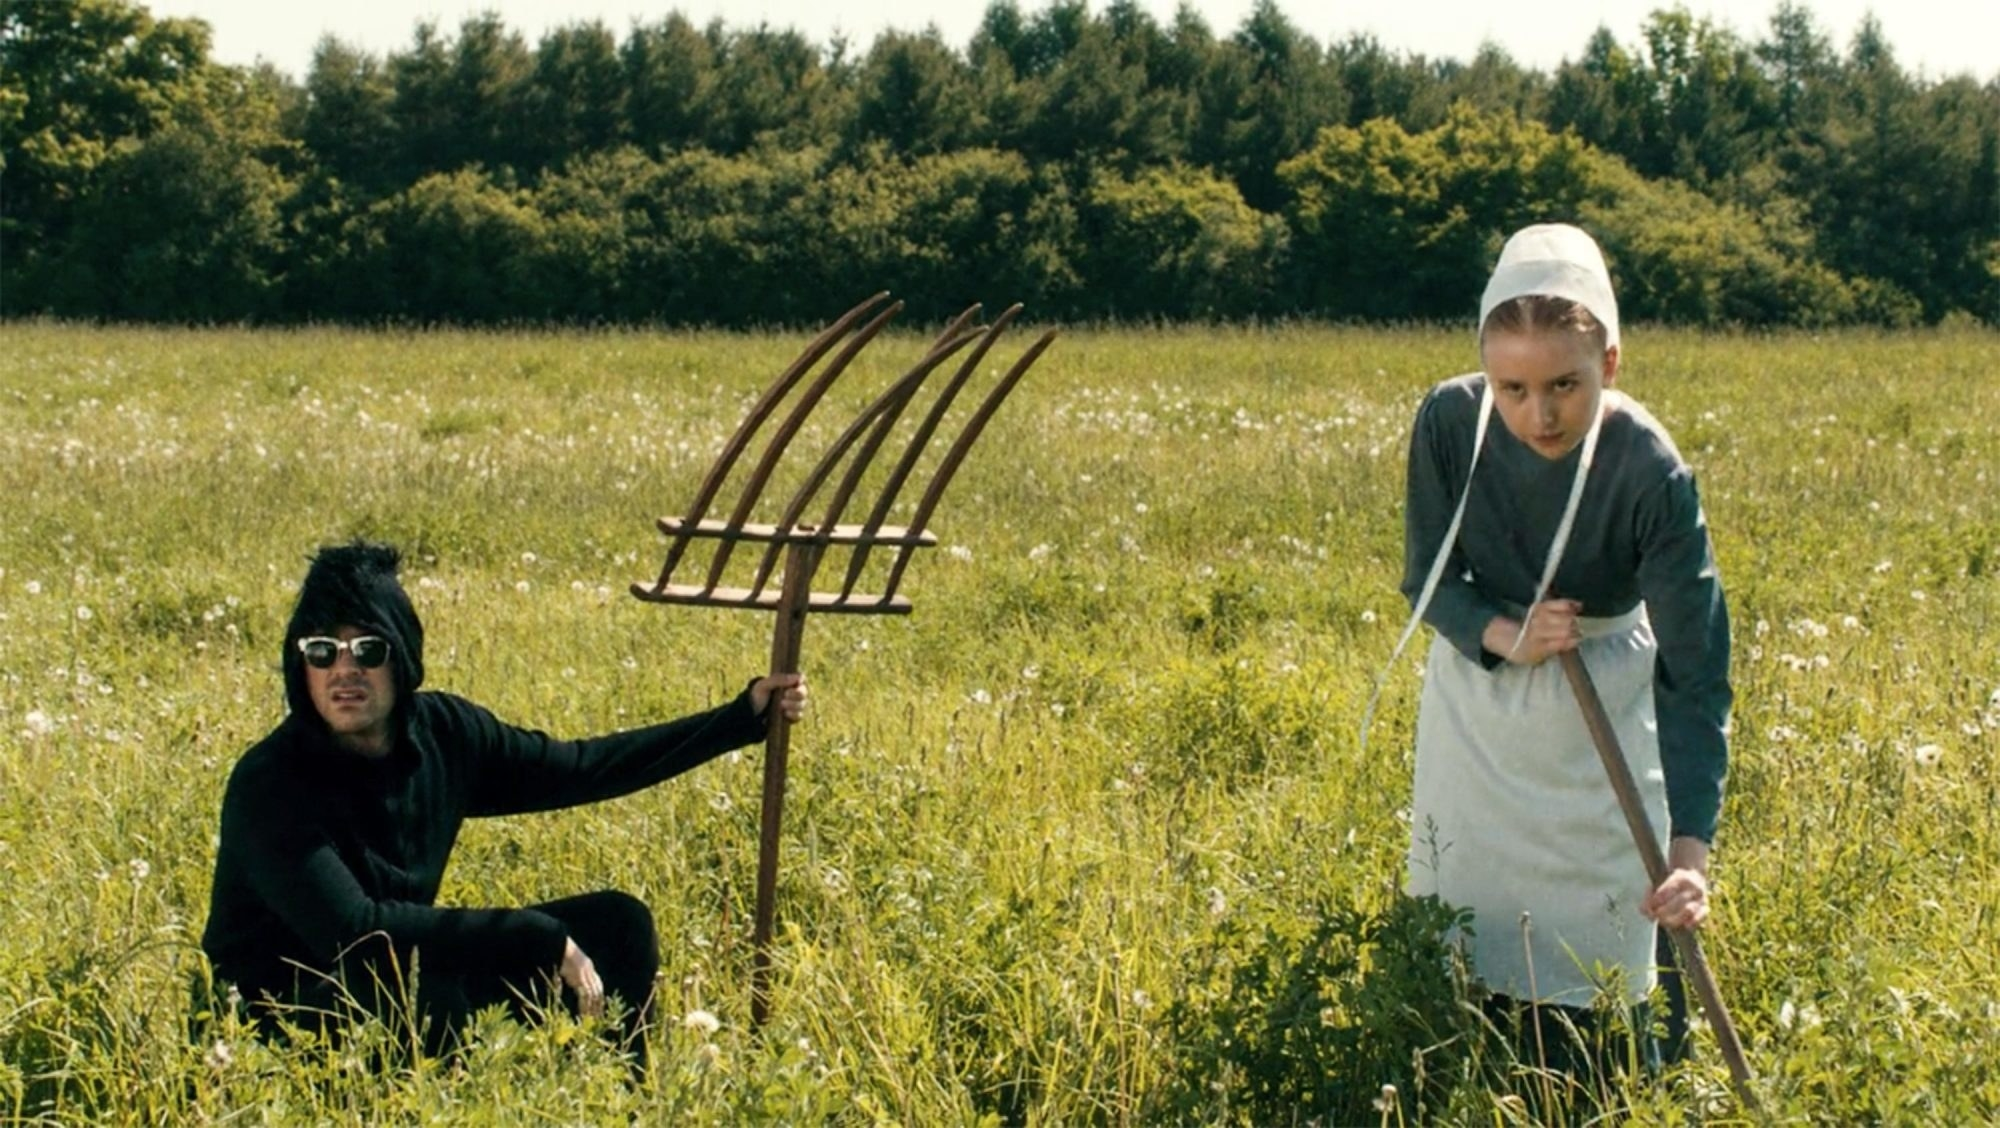 David and Amish girl in field